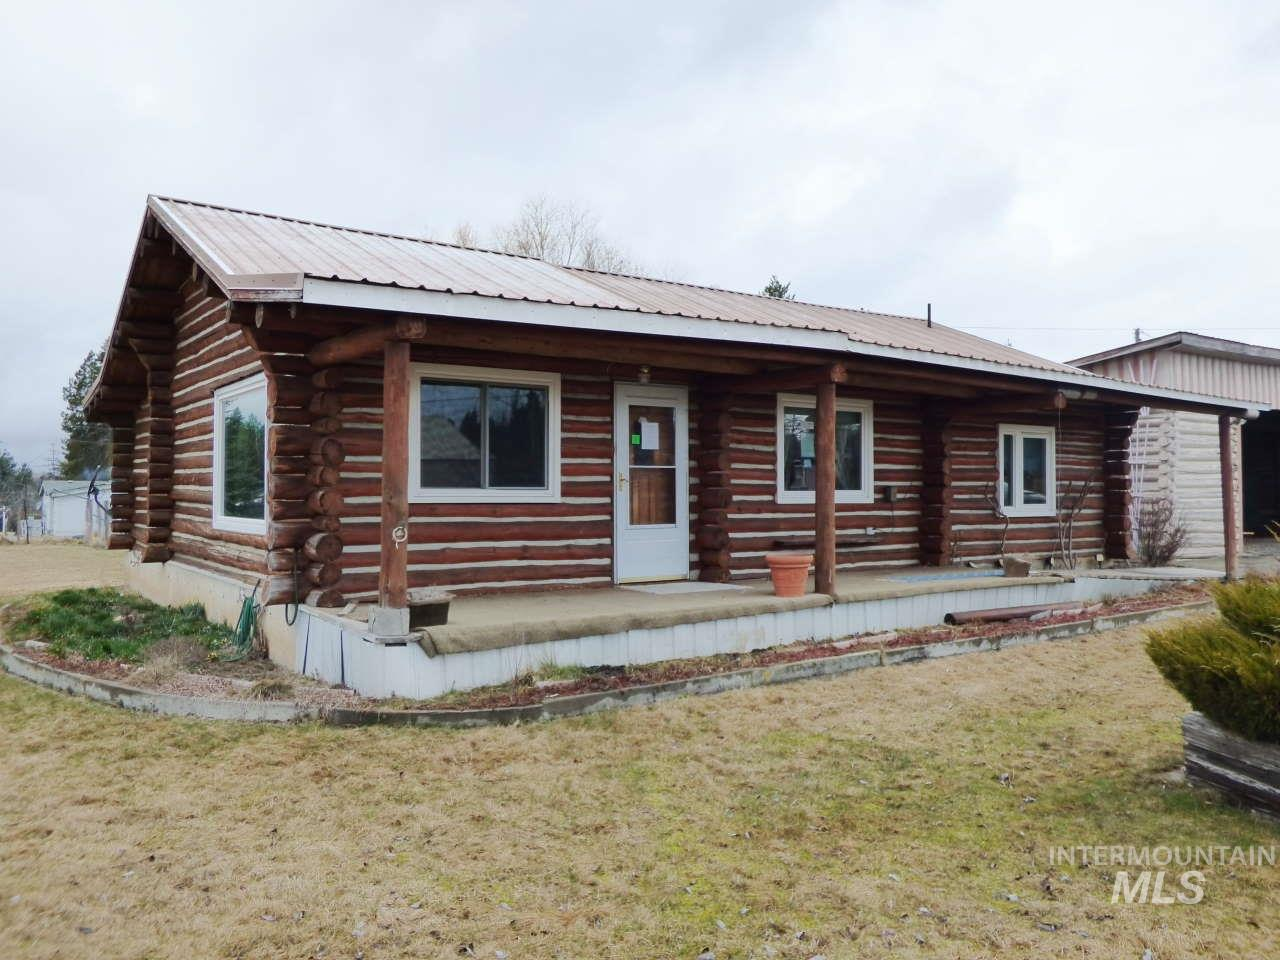 243 Rouleau Loop, Weippe, Idaho 83553, 2 Bedrooms, 1.5 Bathrooms, Residential For Sale, Price $75,000, 98781023